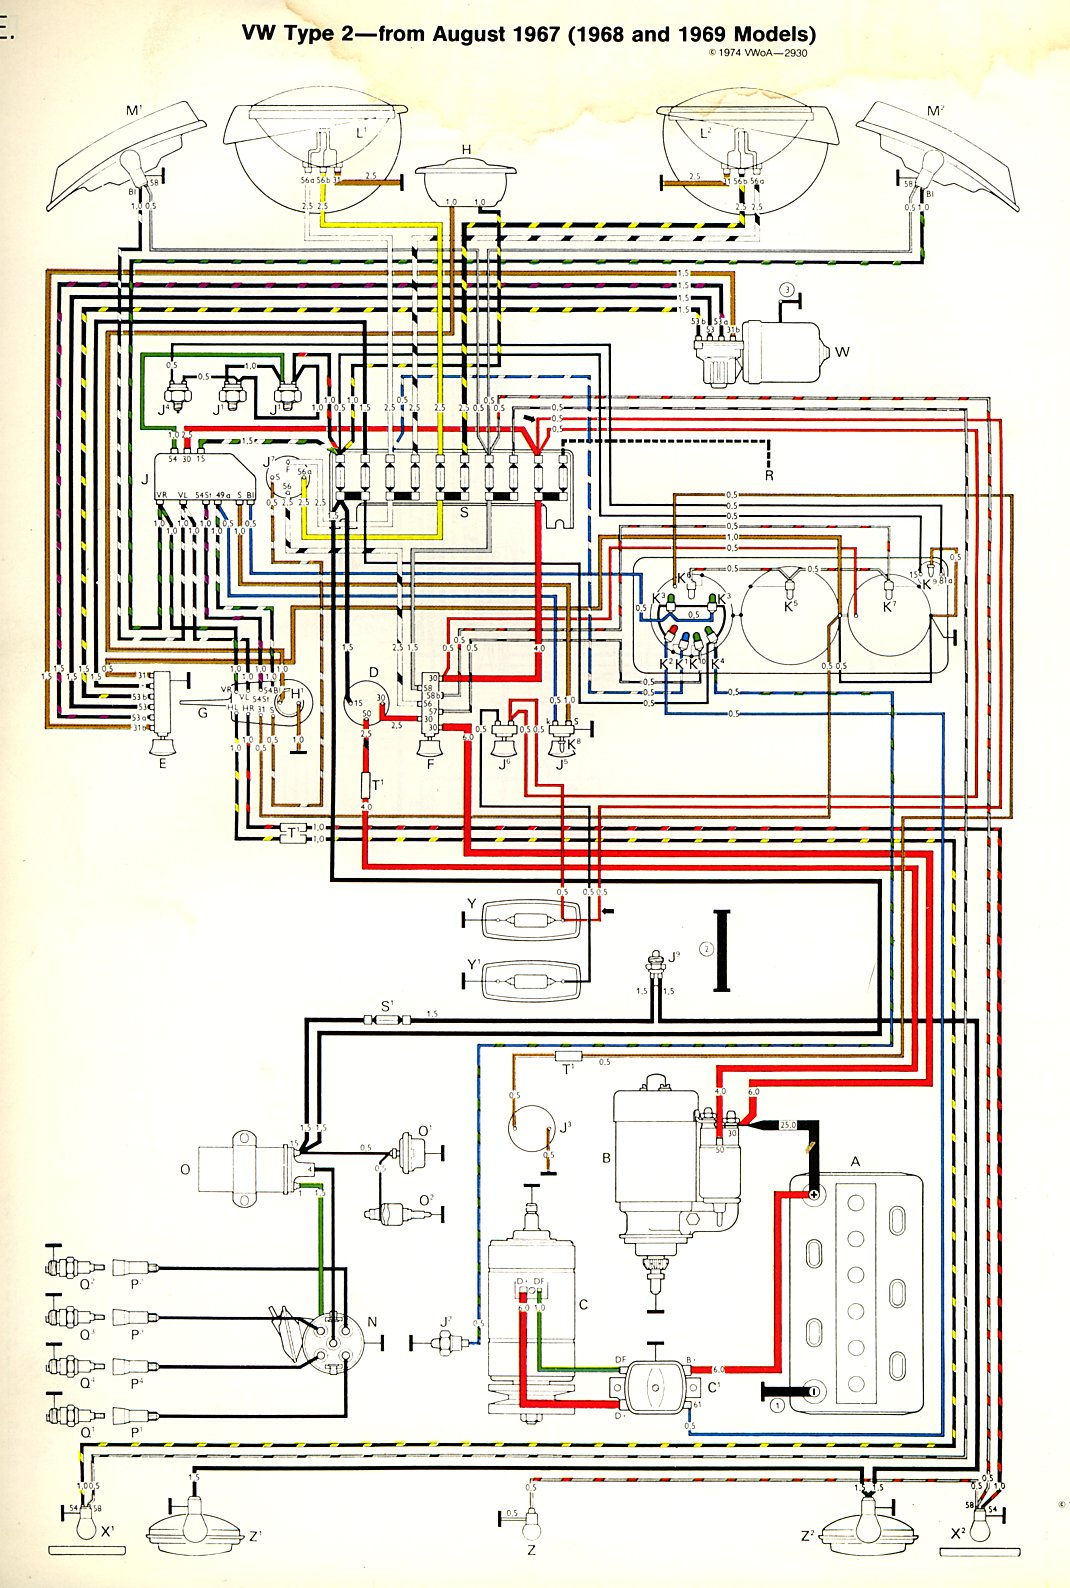 Volkswagen Generator Wiring Diagram from www.thesamba.com